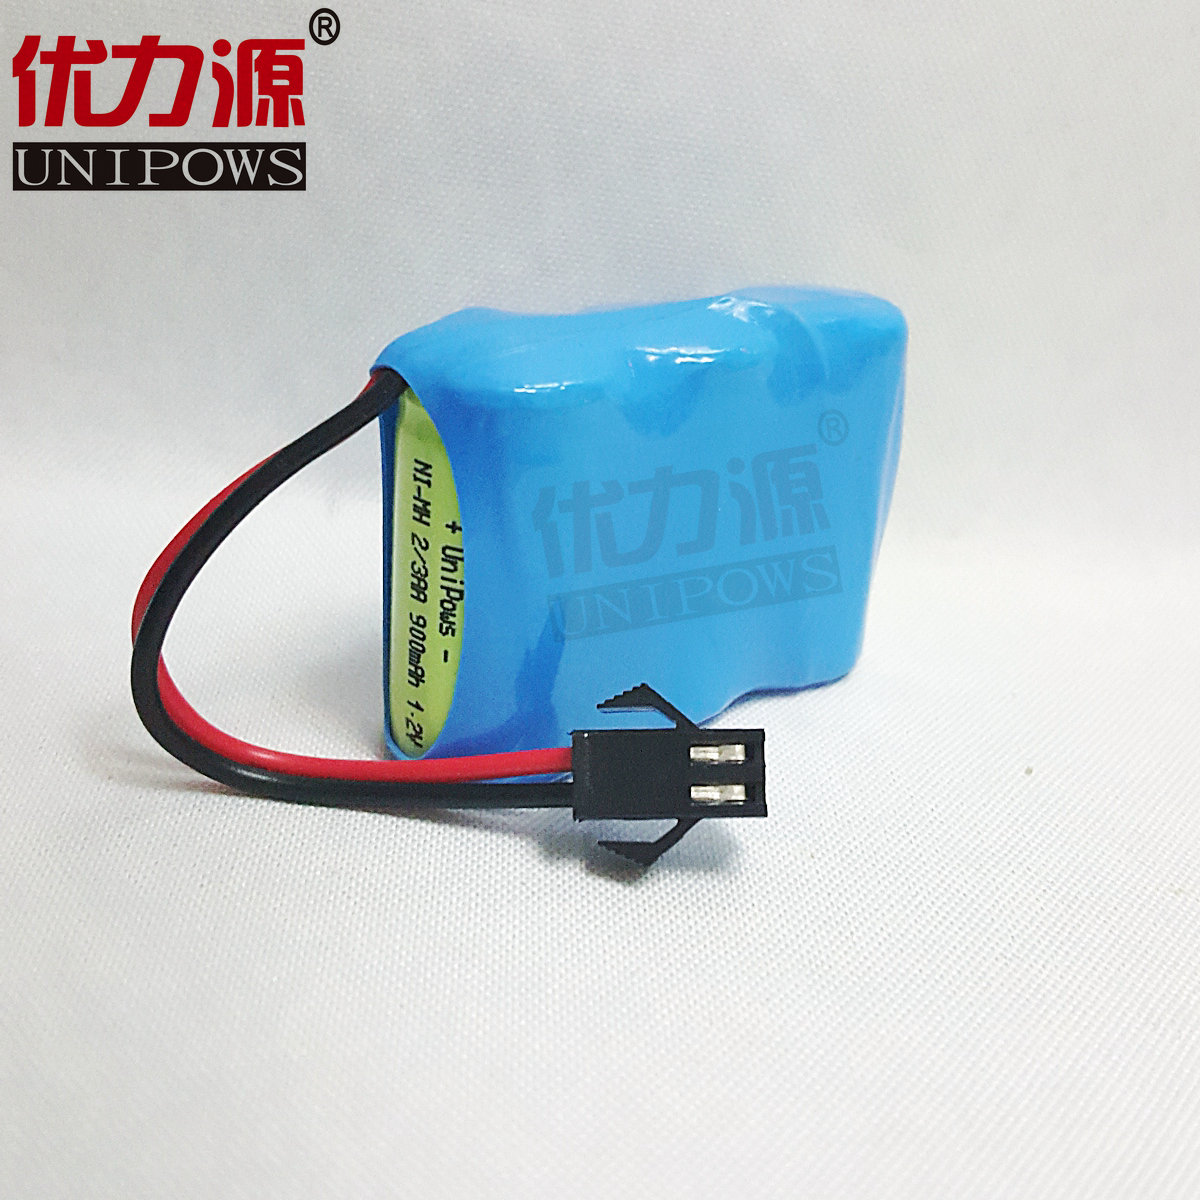 Excellent source of 3.6 v 2/3aa battery 900 mah nimh battery pack single row combination sm head